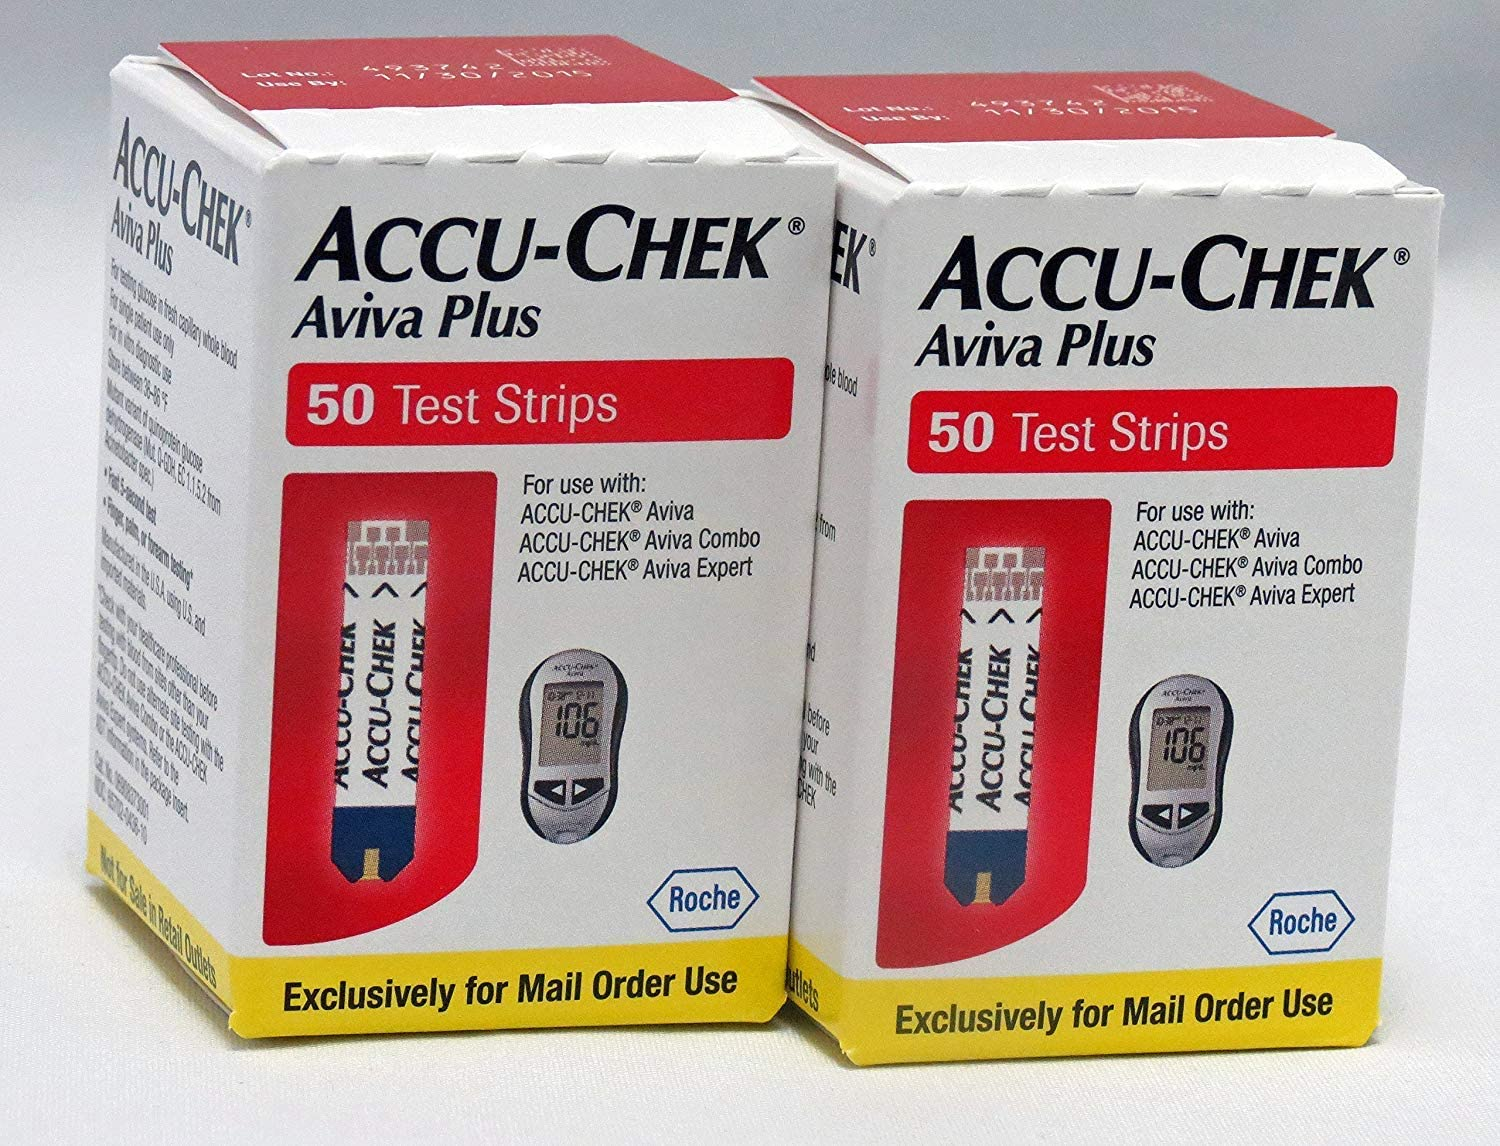 Accu Chek Aviva Plus Test Strips